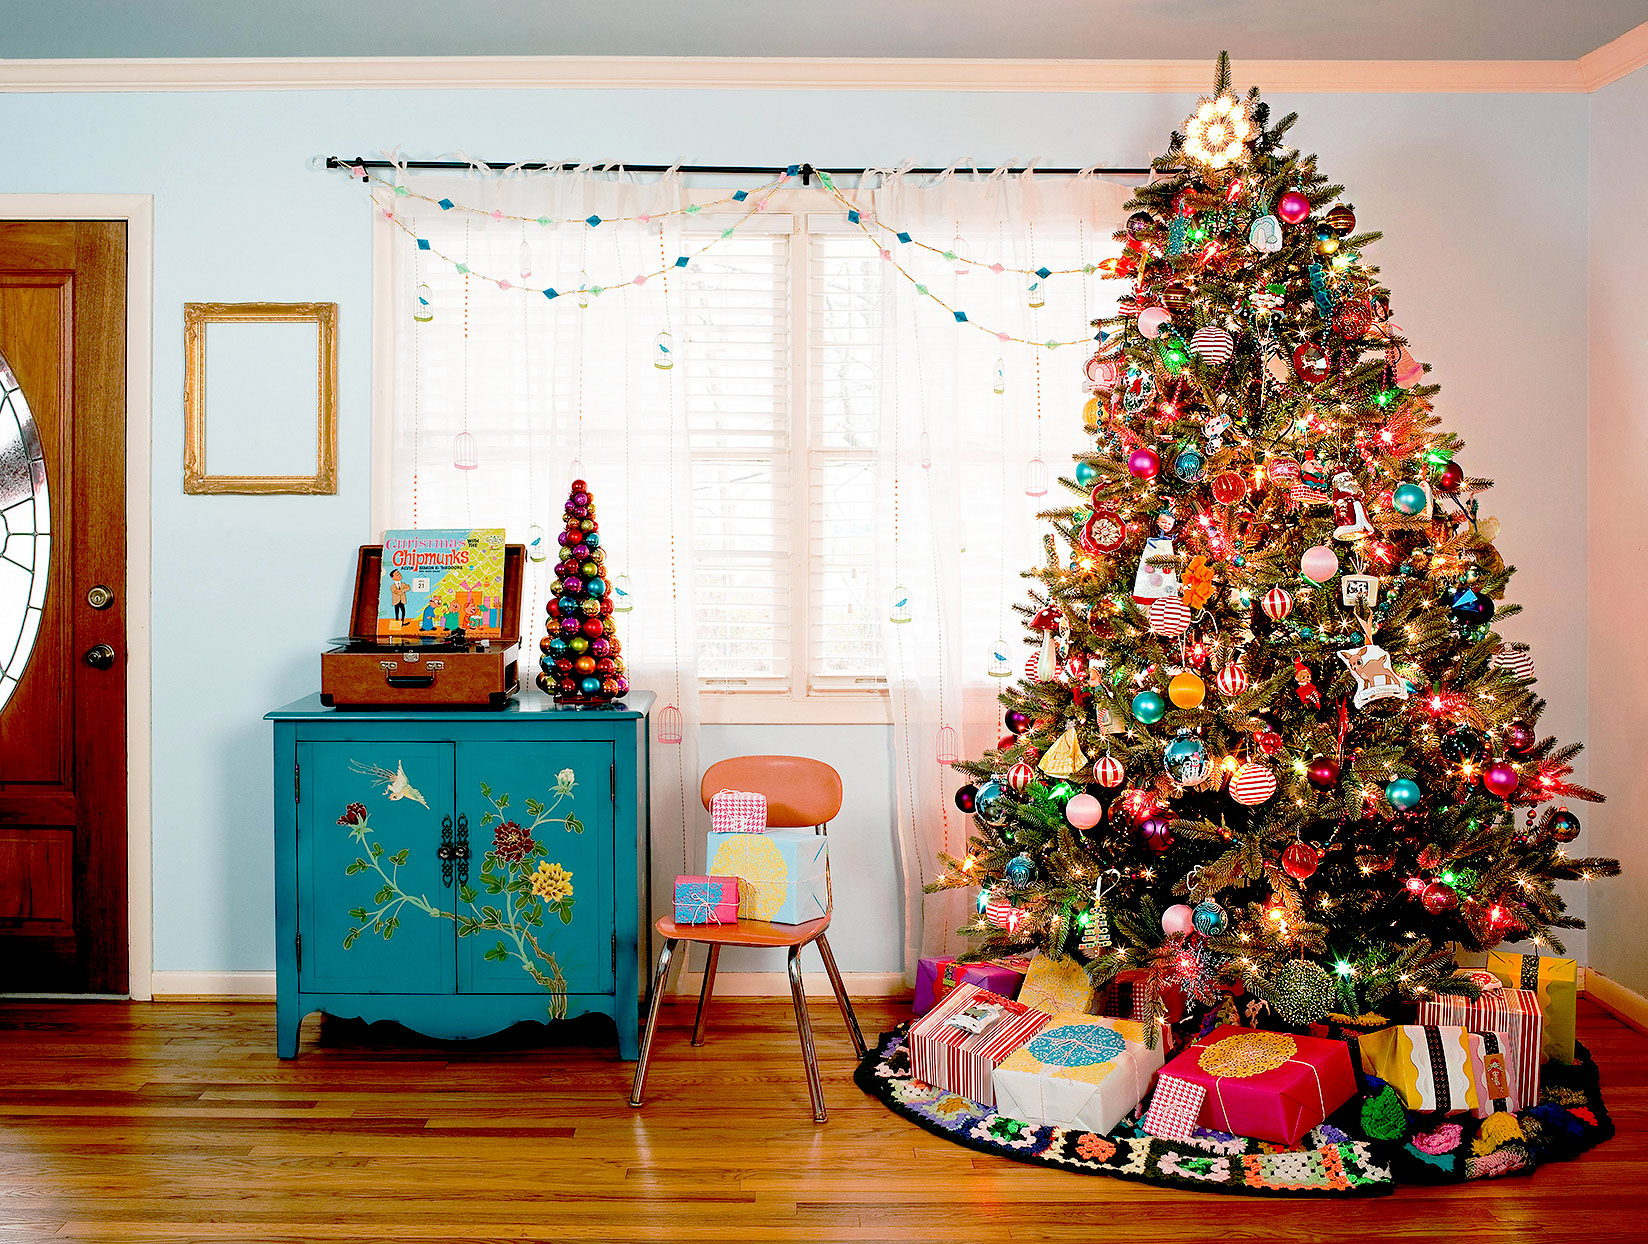 squarerooms jeff herr photography christmas tree living room decor colourful eclectic festive